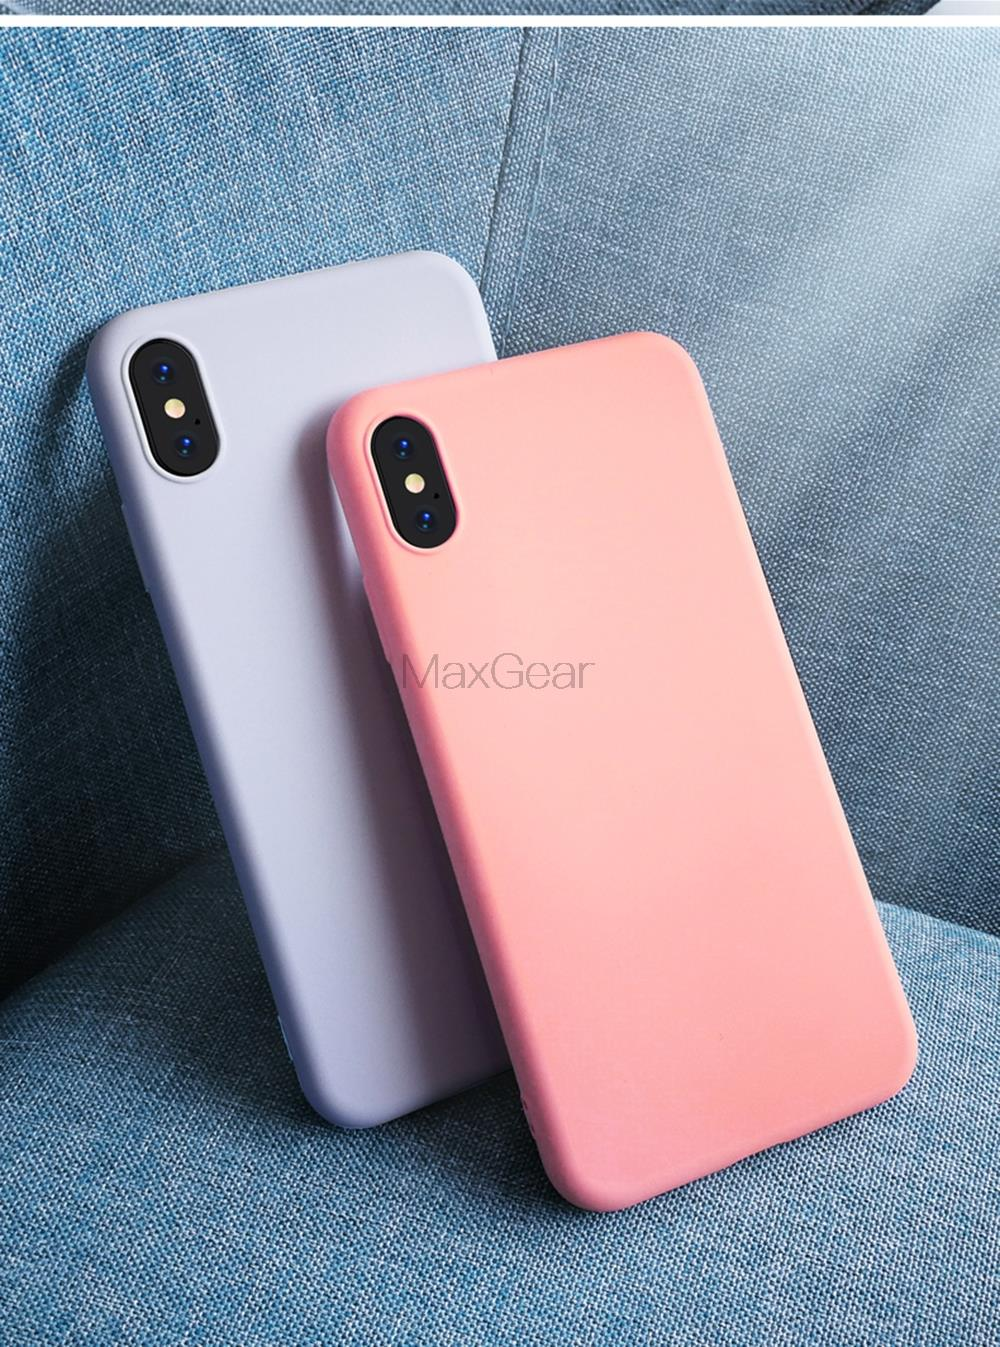 Thin Soft Case For iPhone 7 8 6 6s Plus 4 5S SE 2 Original Liquid Silicone Cover Candy For iPhone X Xs 11 Pro Max XR